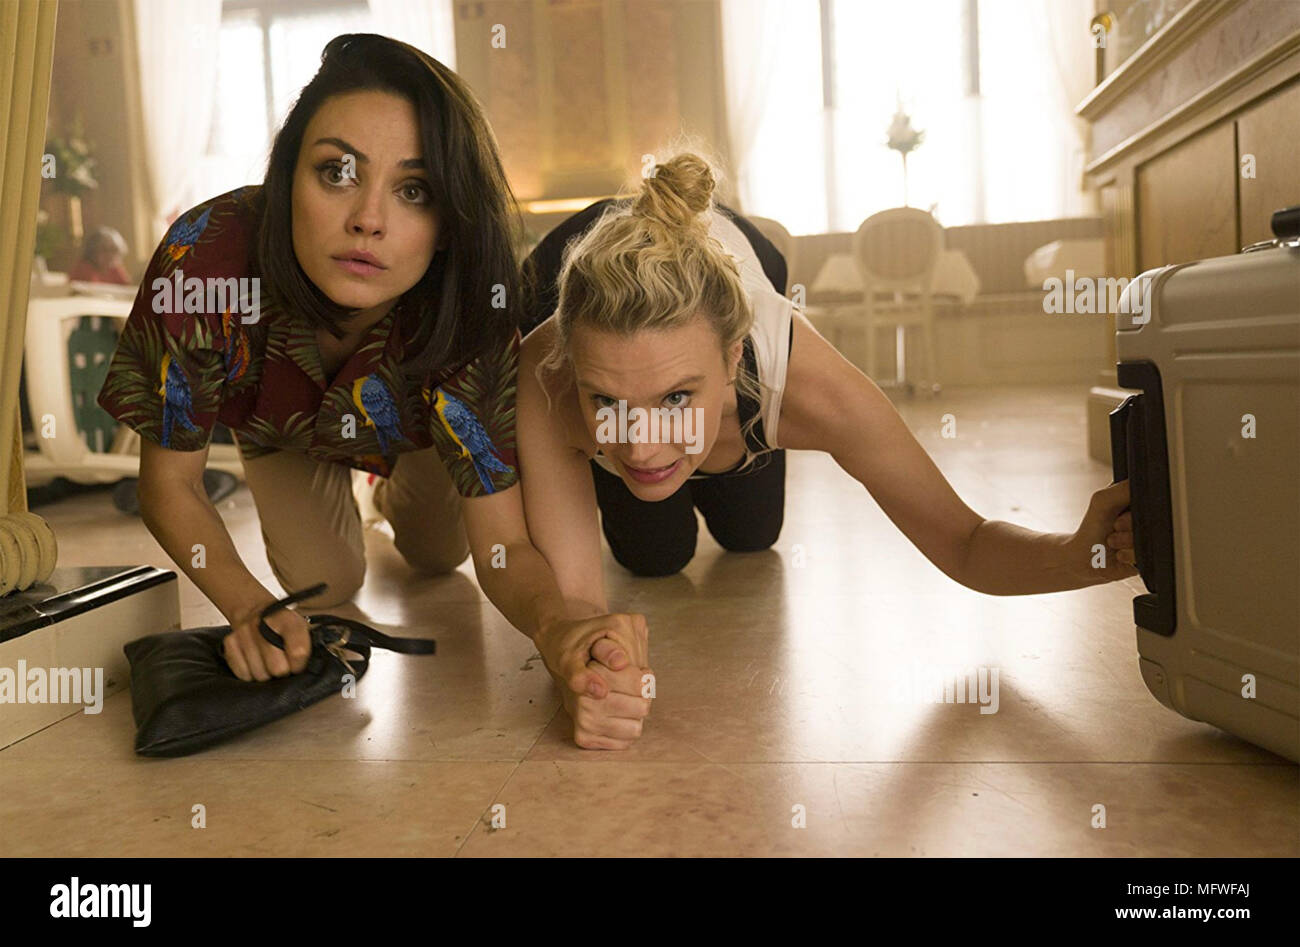 THE SPY WHO DUMPED ME 2018 Lionsgate film with Mila Kunis at left and Kate  McKinnon - Stock Image